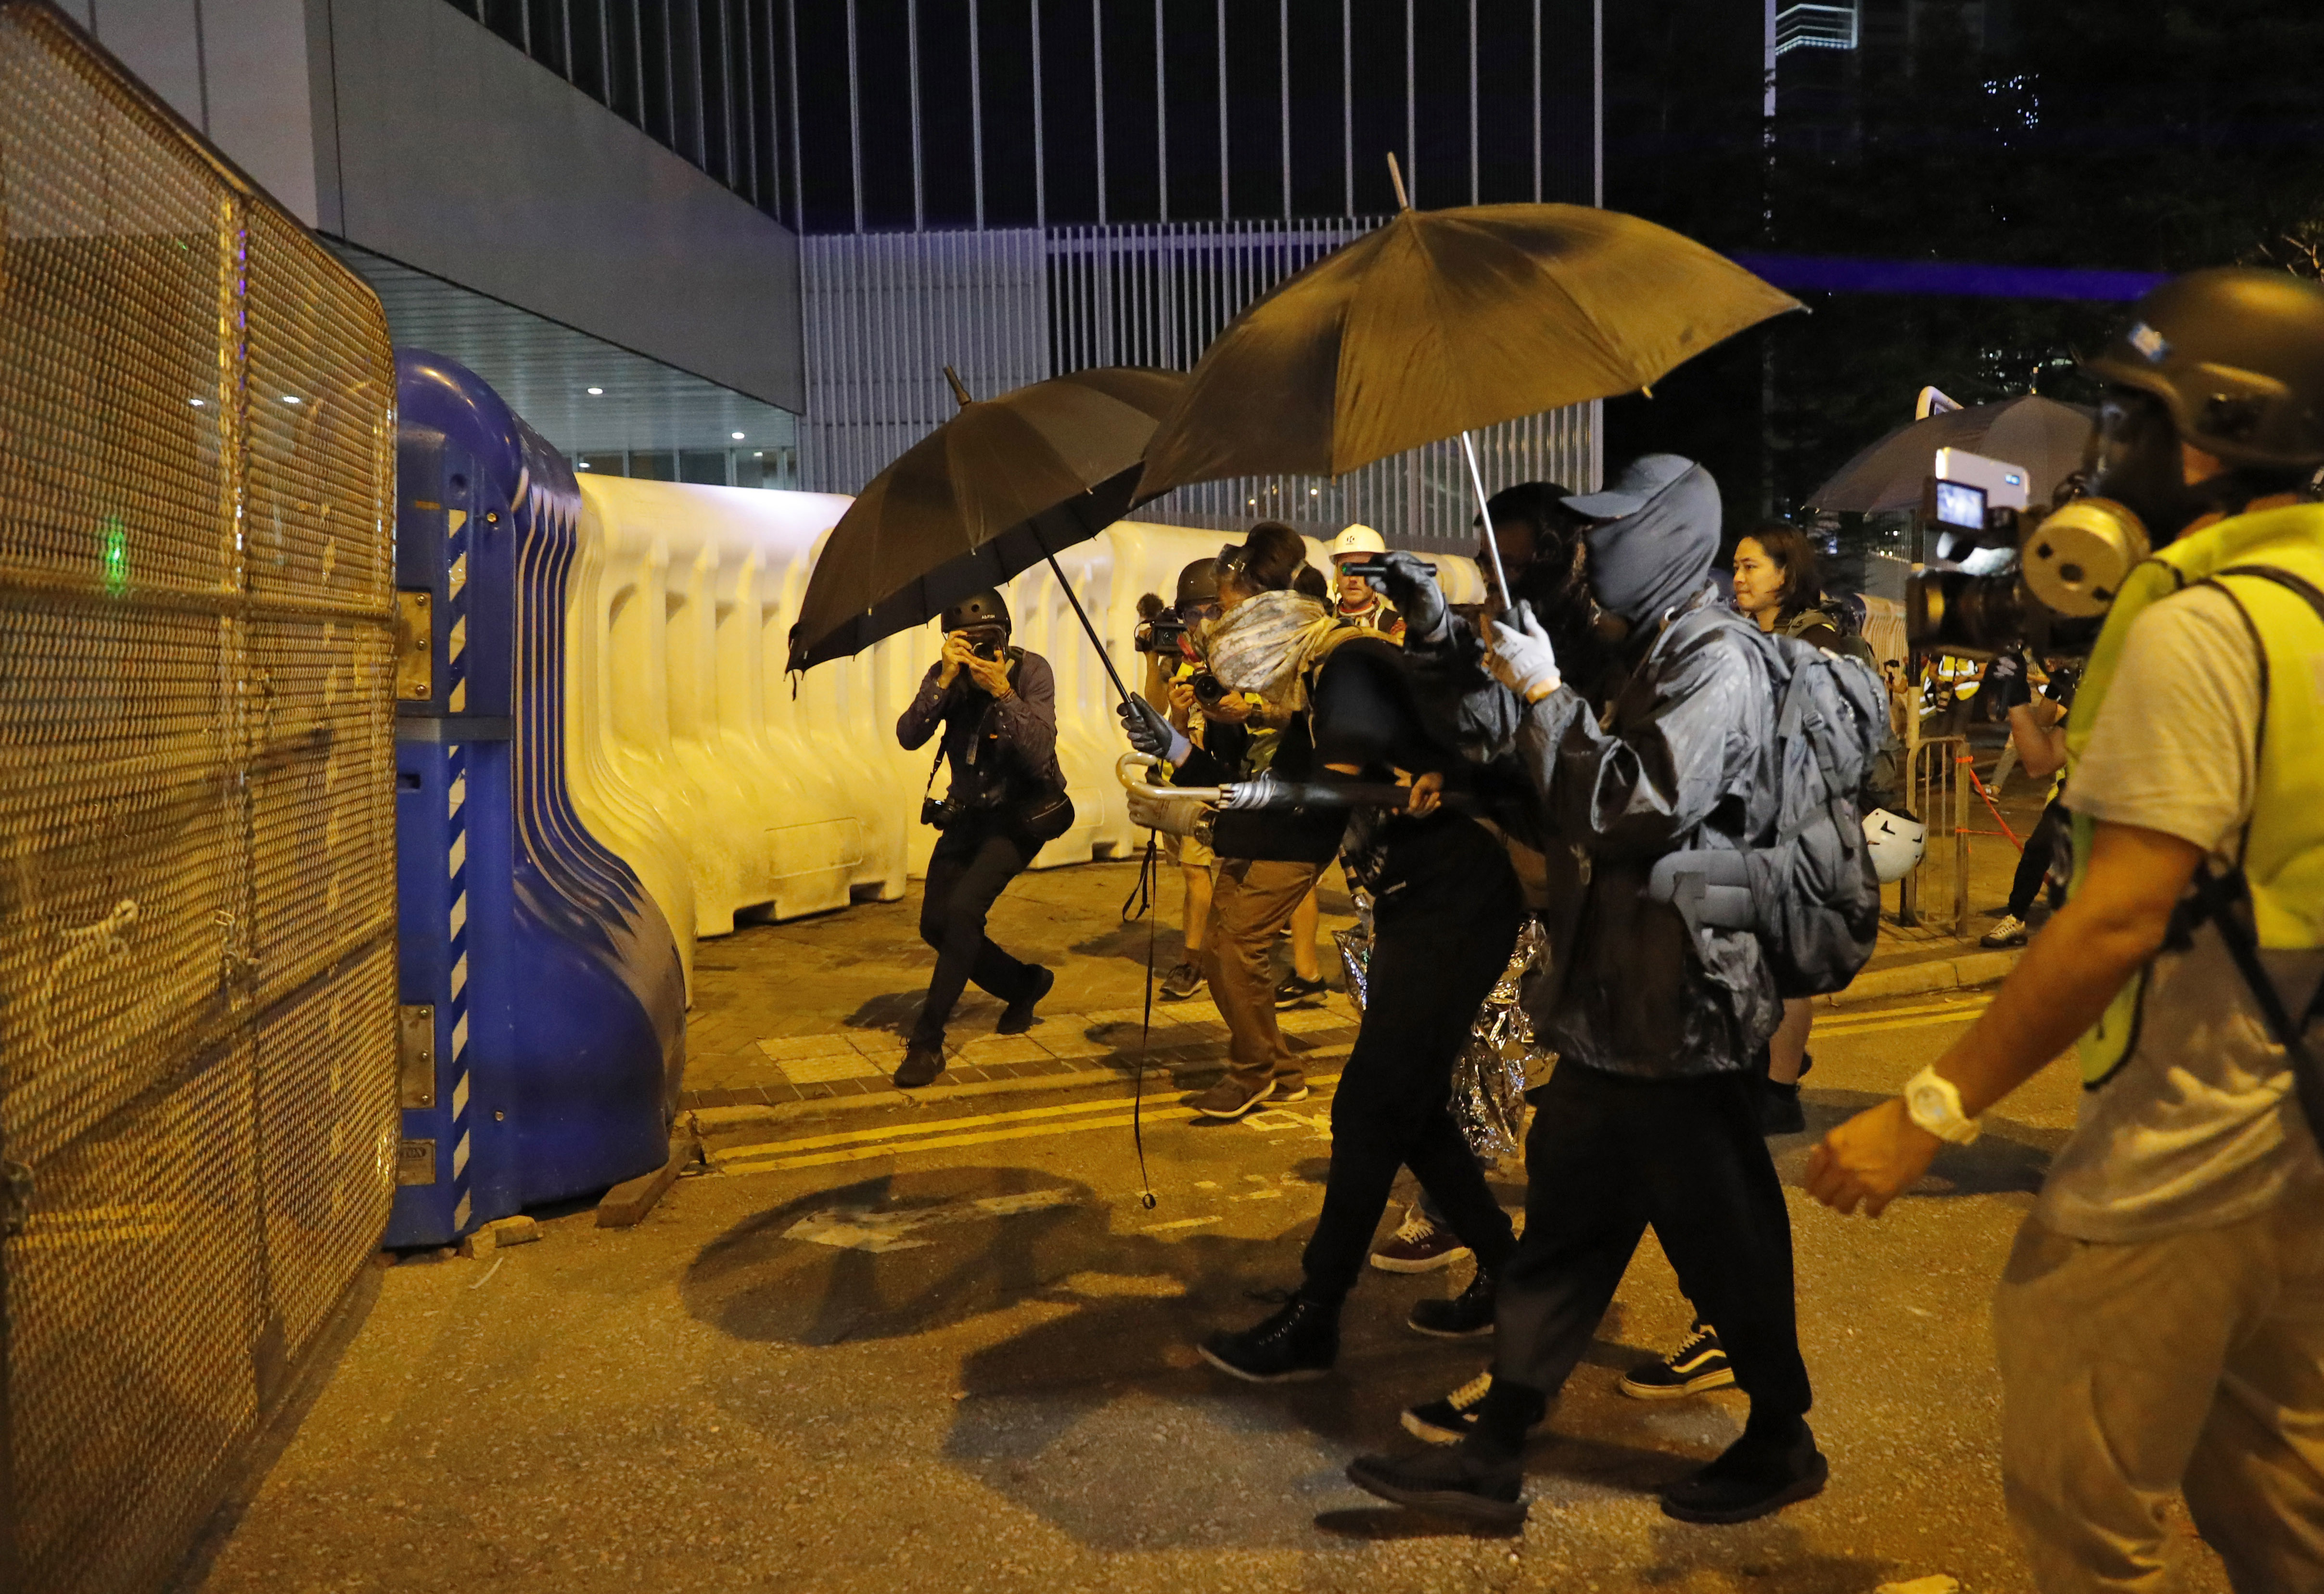 The Latest: Hong Kong rally ends early amid violence